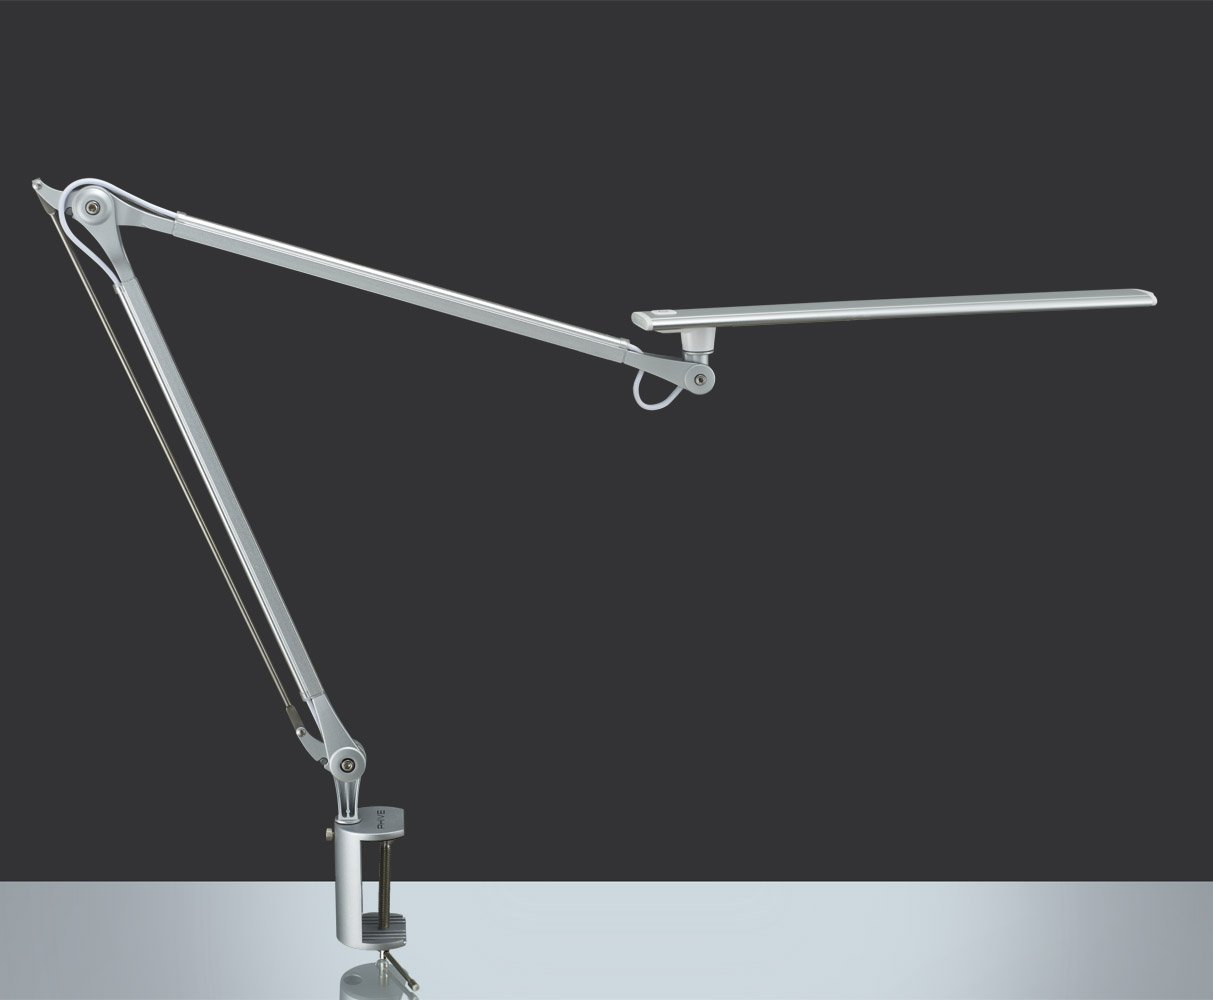 Phive CL-1 LED Architect Desk Lamp Review: Latest ...